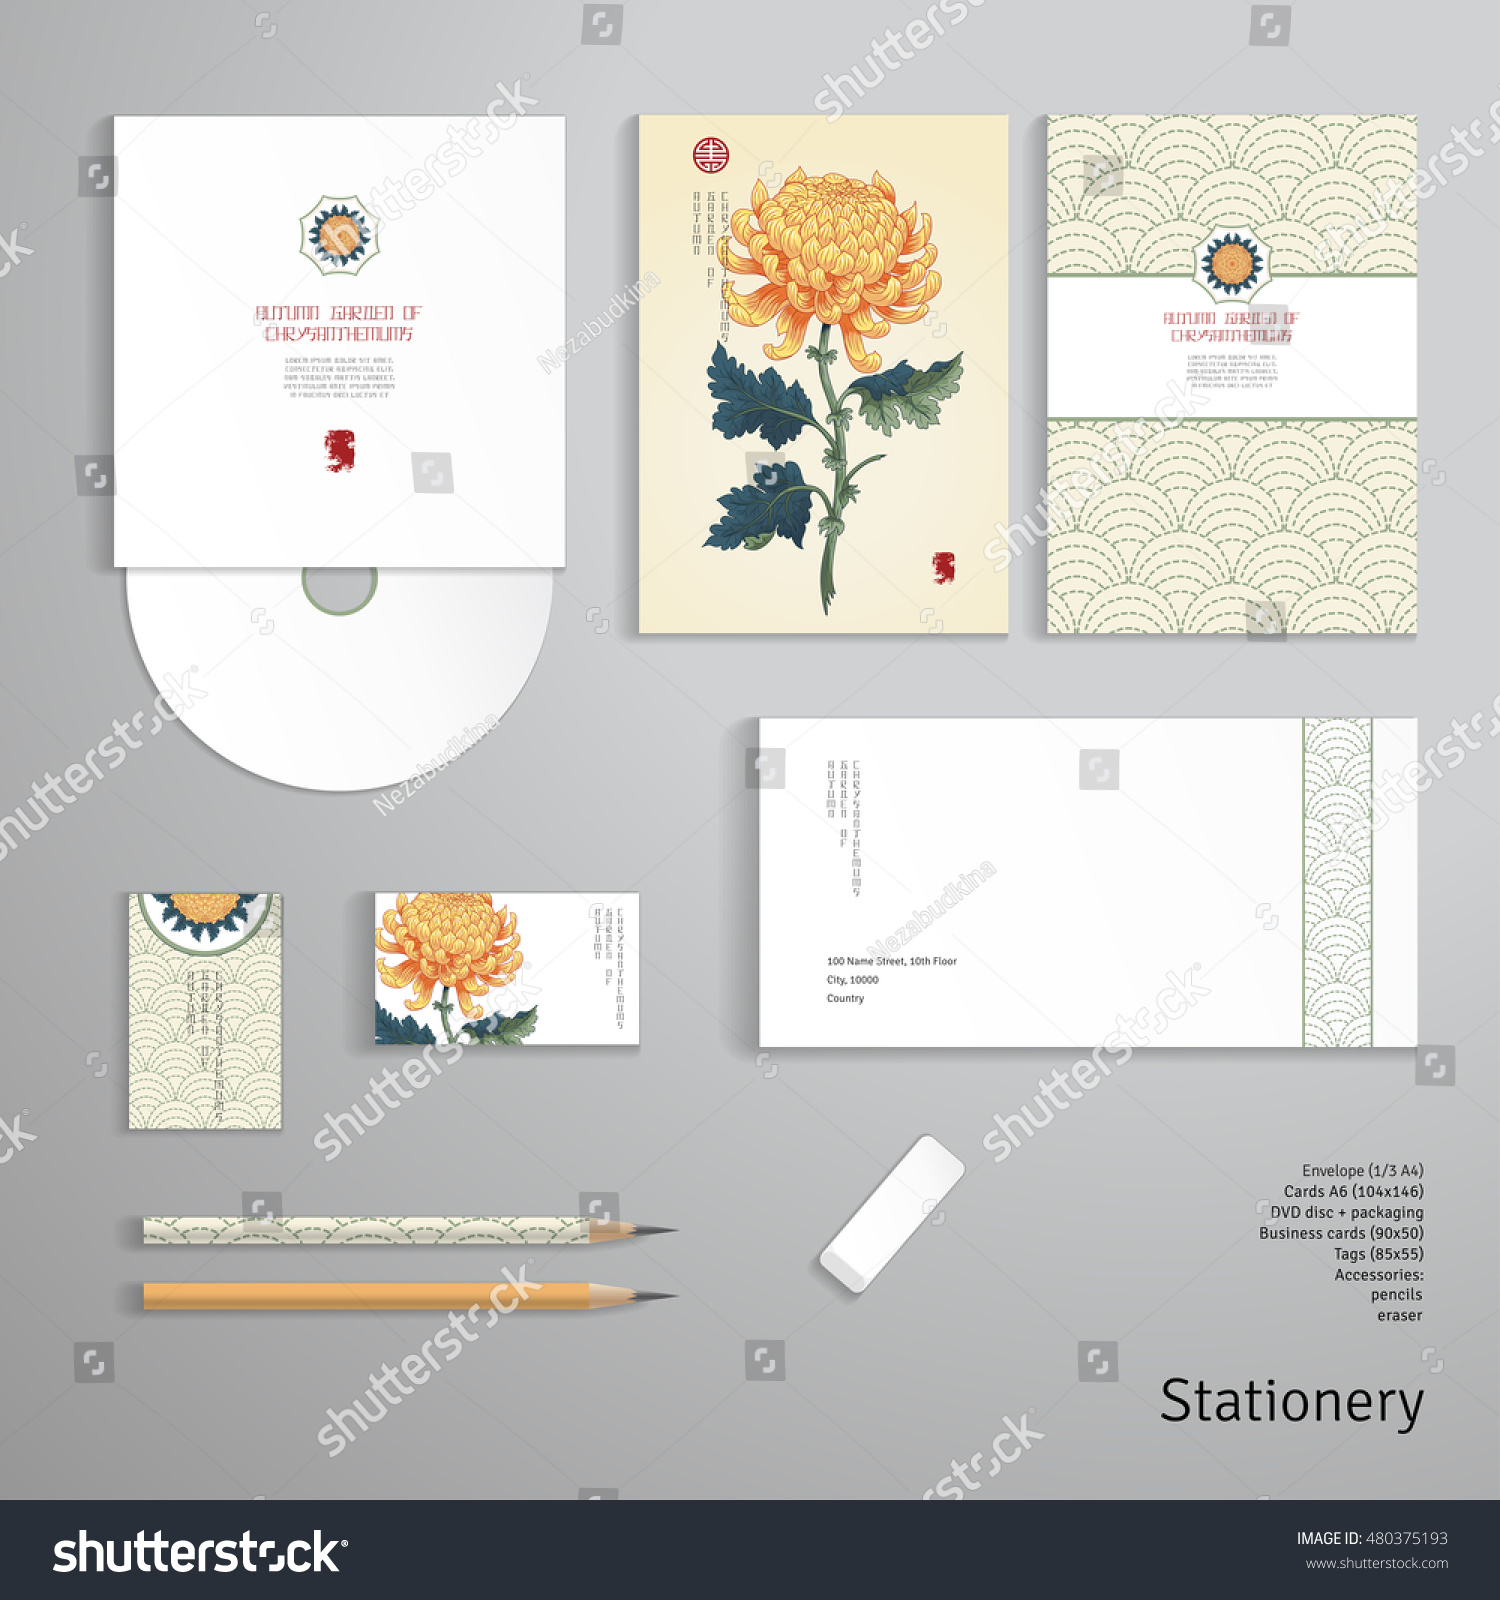 vector identity templates envelope business card stock vector